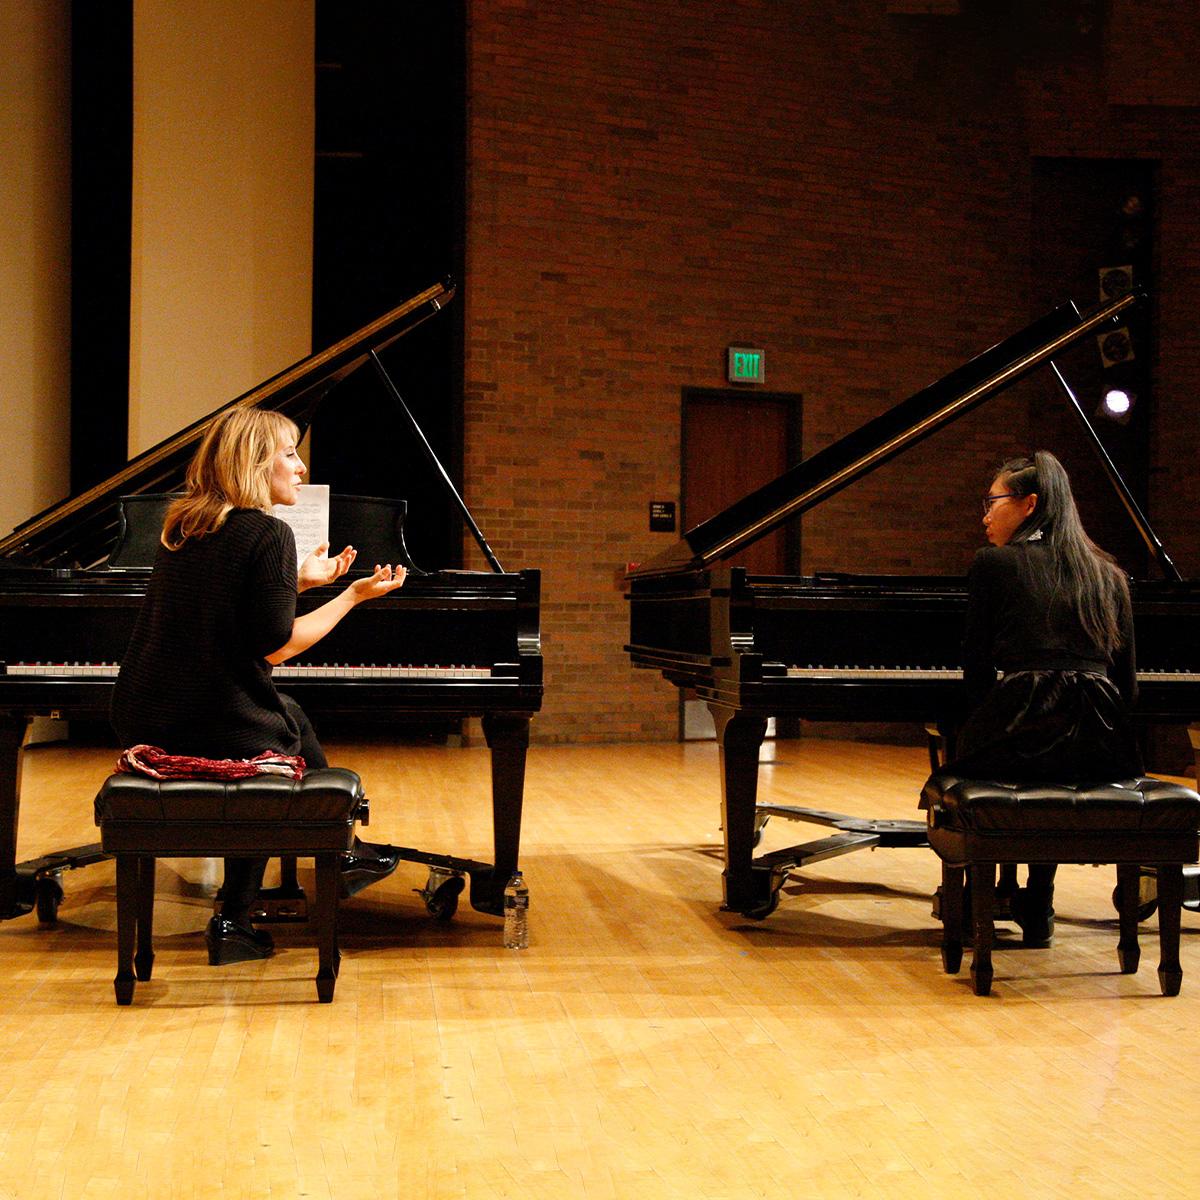 Two women talking while sitting at two separate pianos